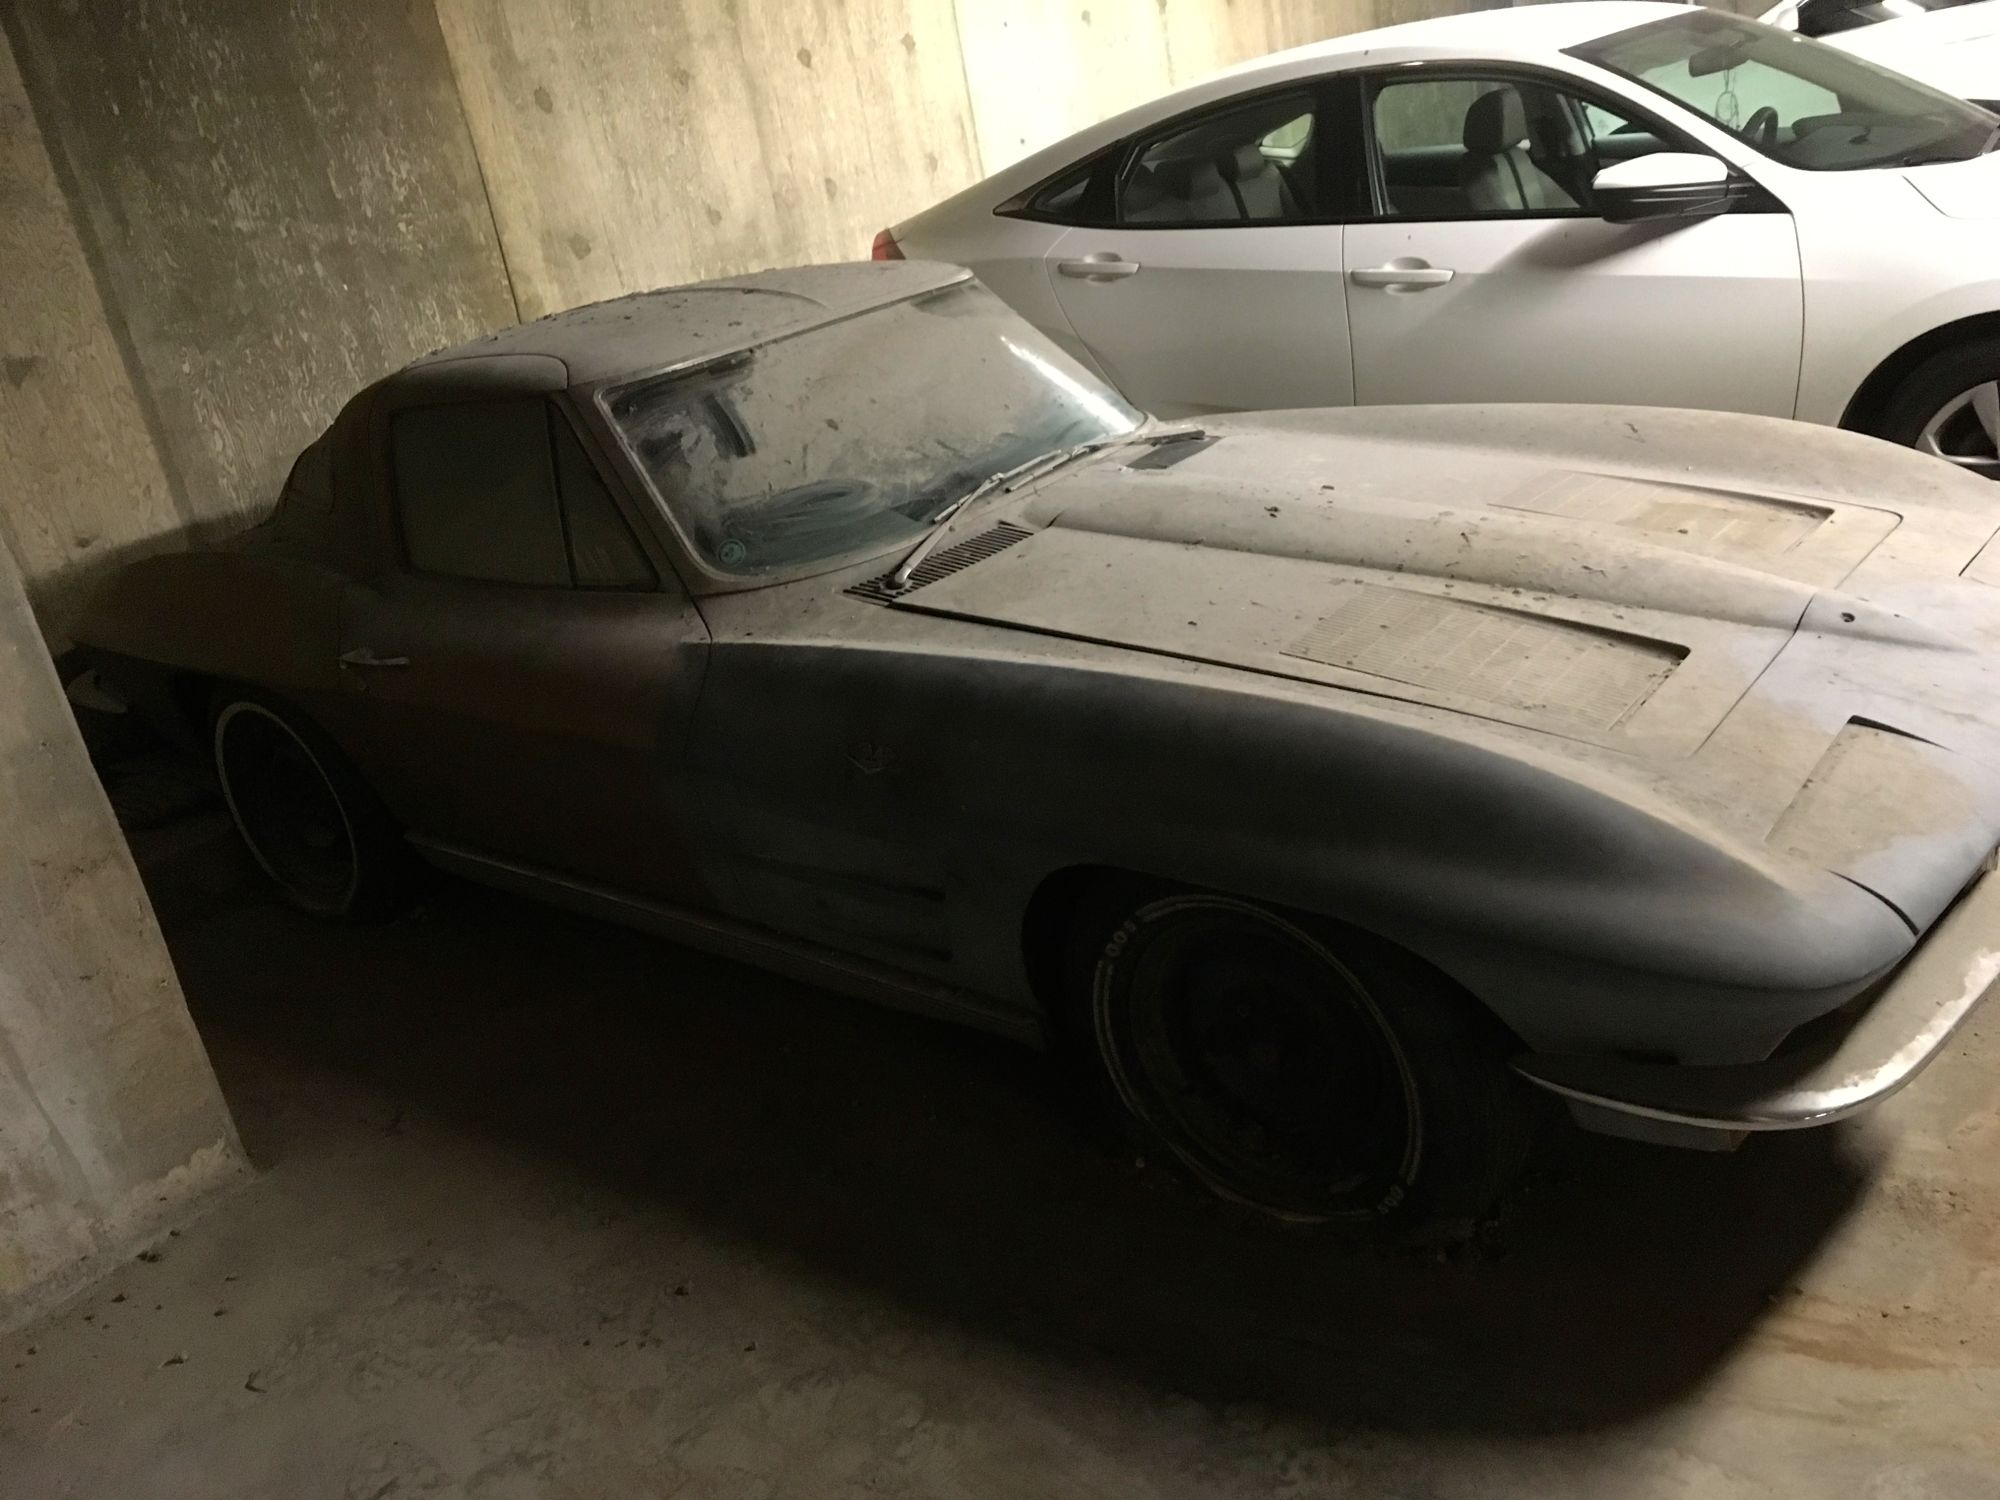 This 1963 Split Window Corvette Has Been Stored In A Parking Garage For Almost 40 Years